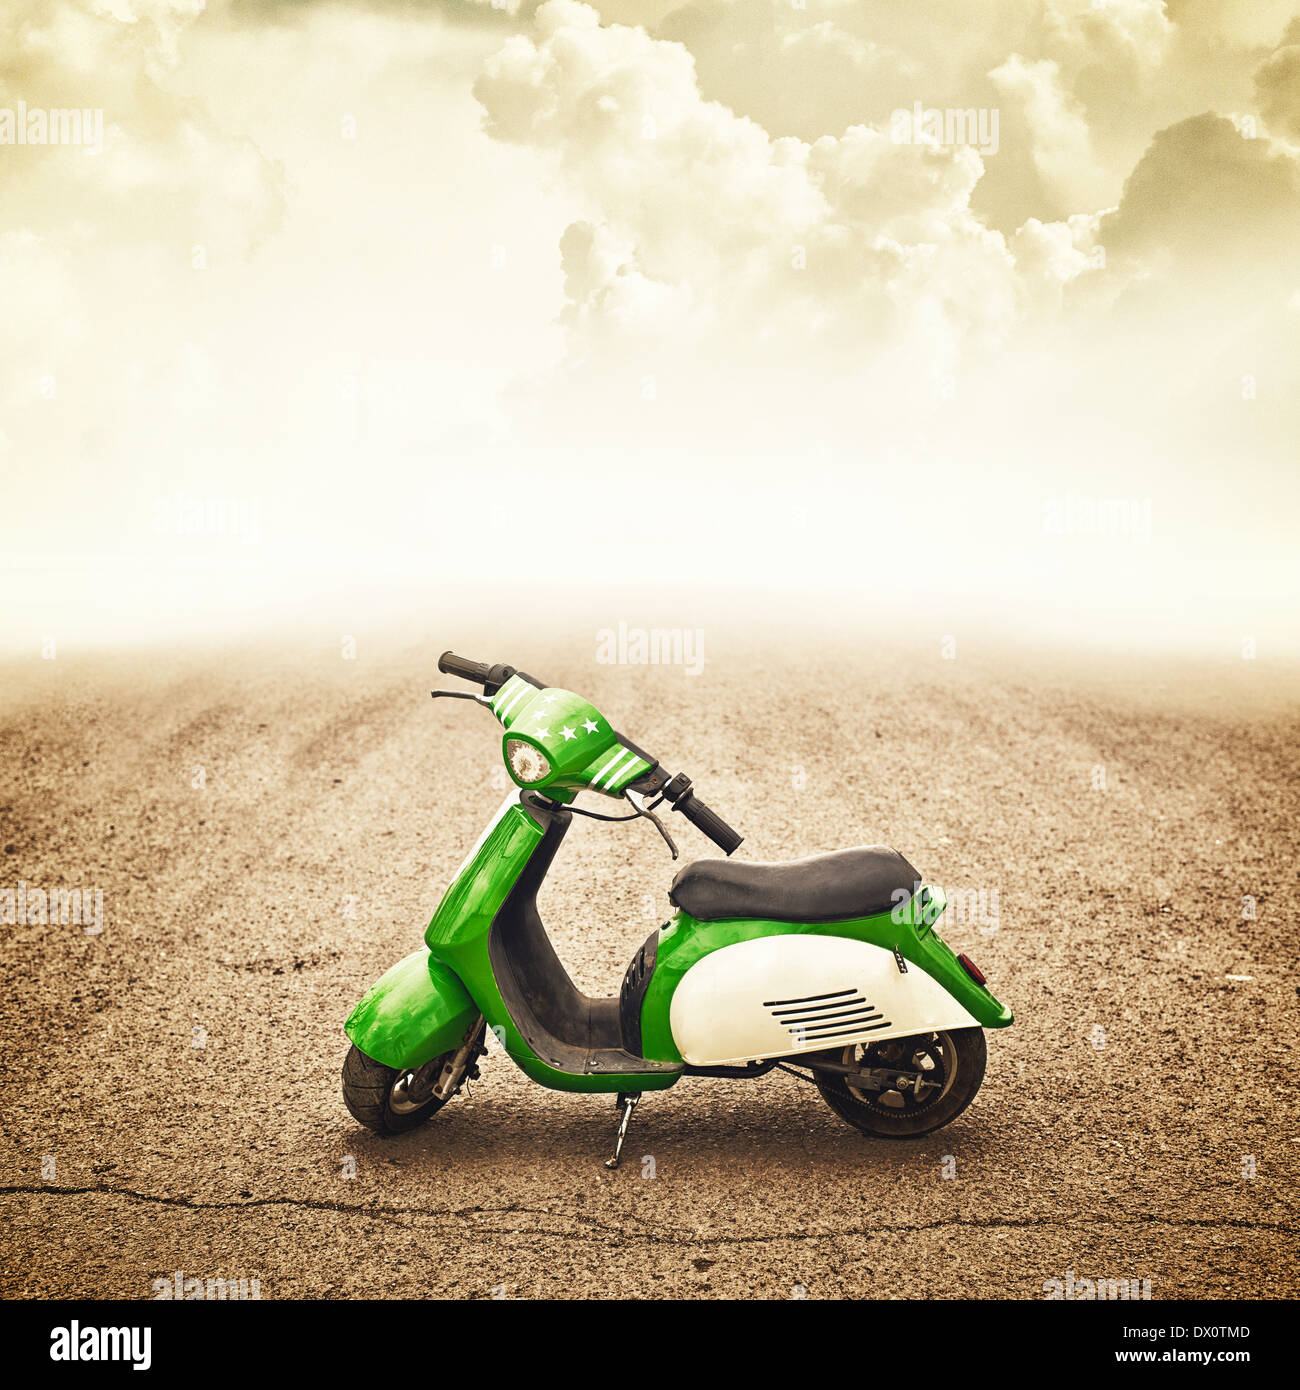 Mini Motor Bike For Children, Trendy Vehicle   Stock Image